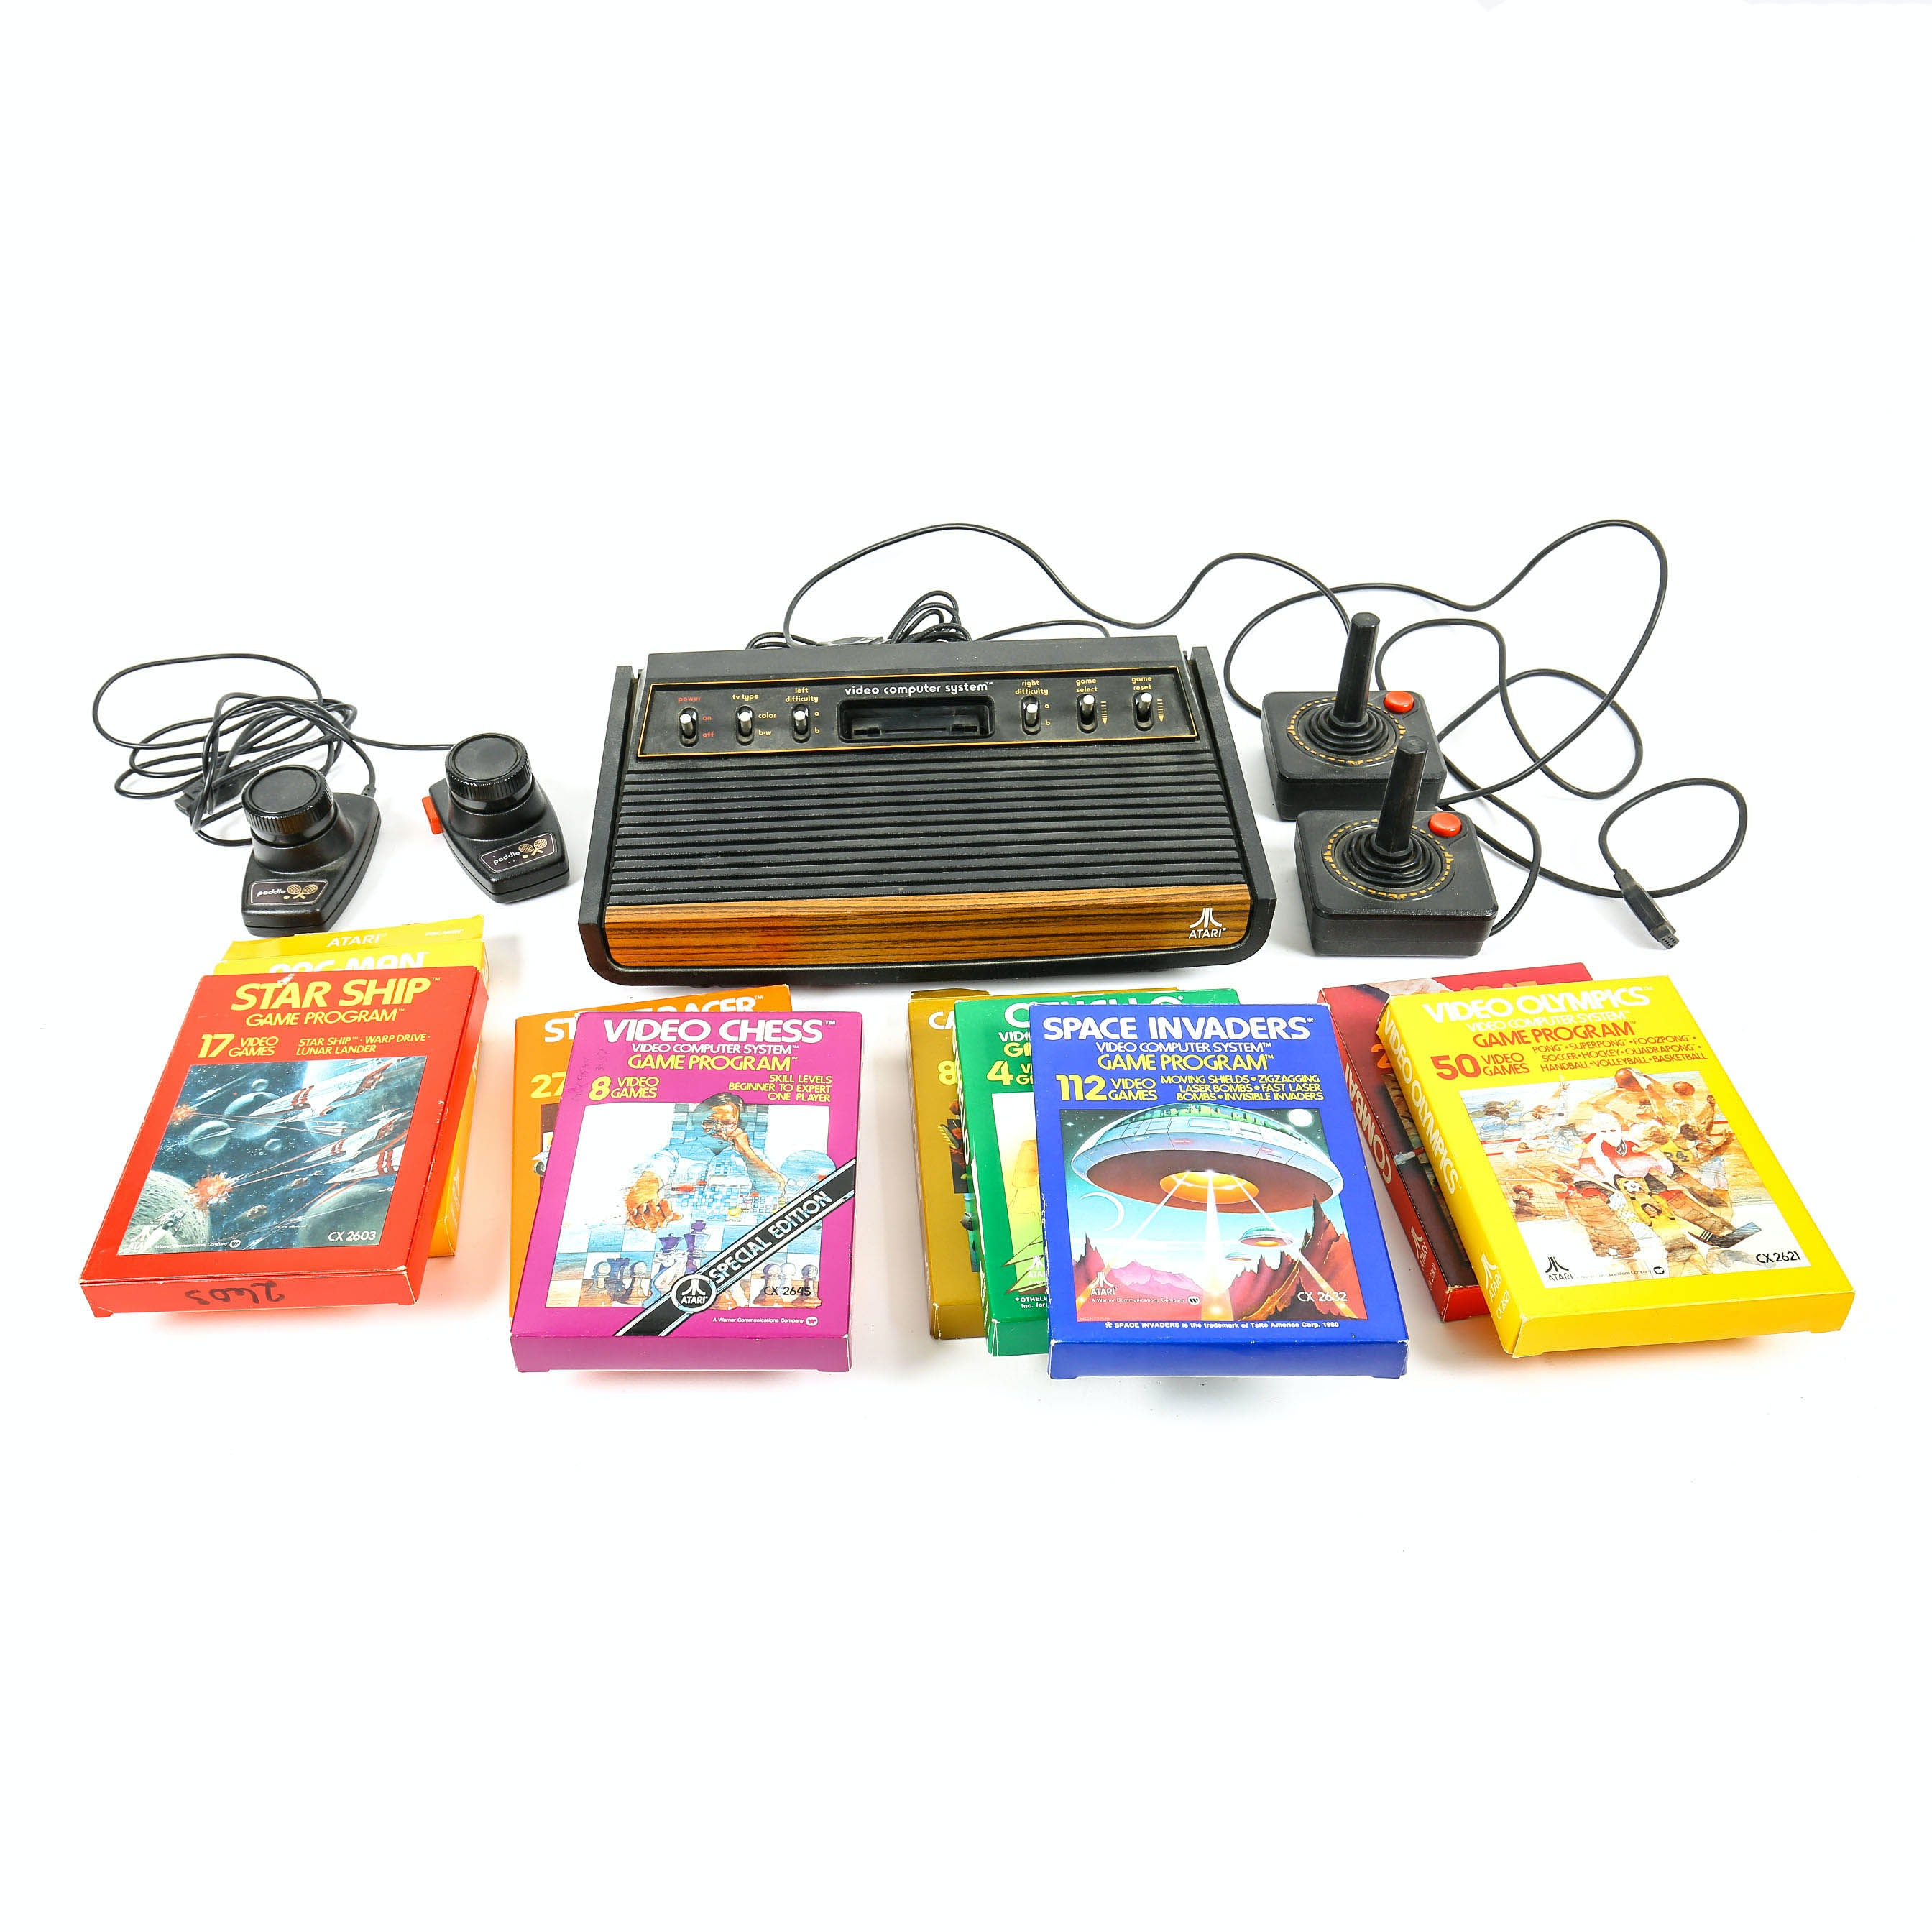 Atari Video Game Console and Games